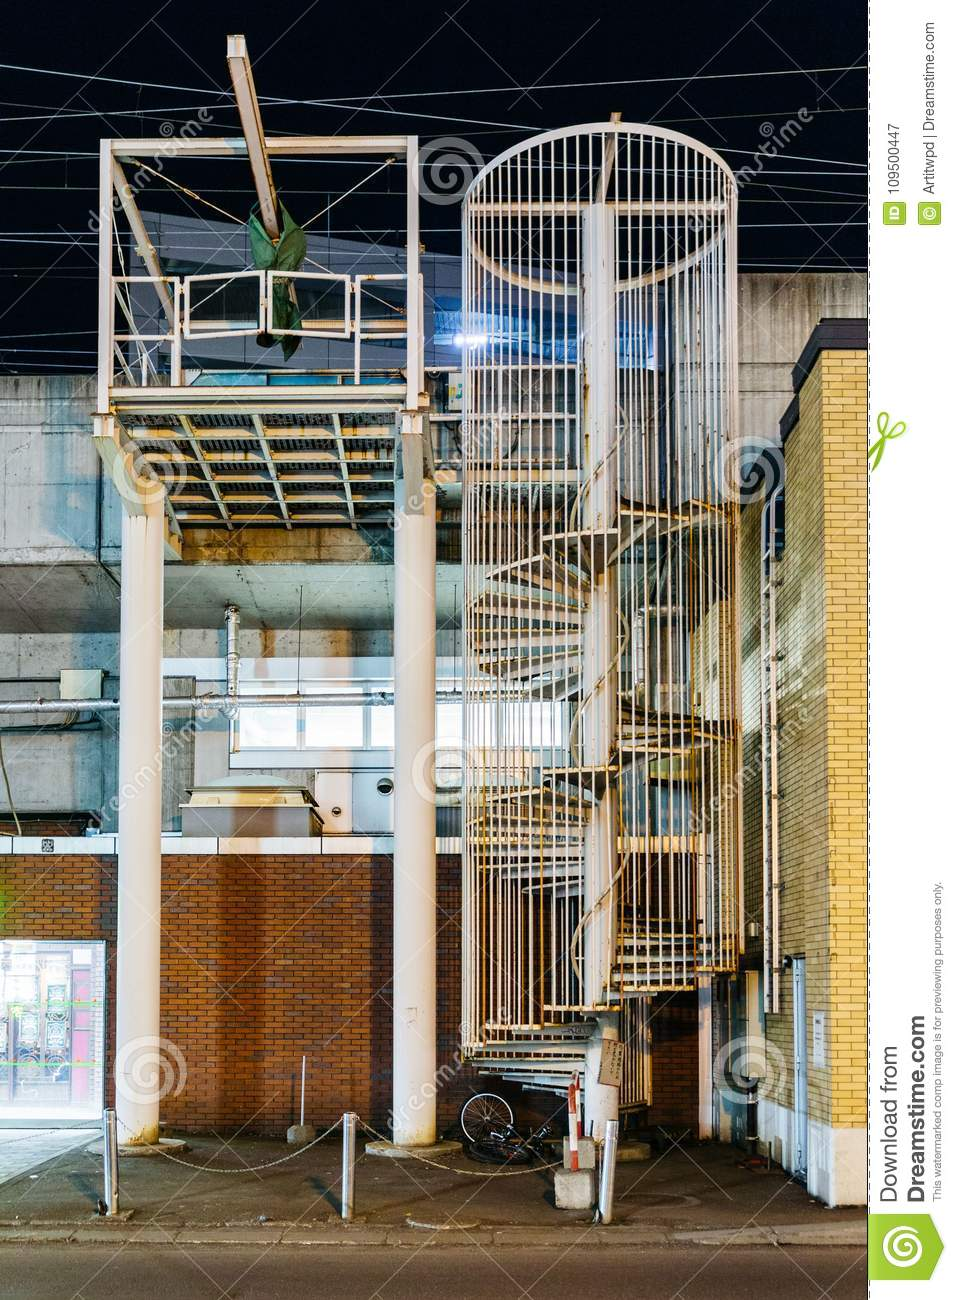 Outdoor Spiral Staircases To The Roof Top Of The Building